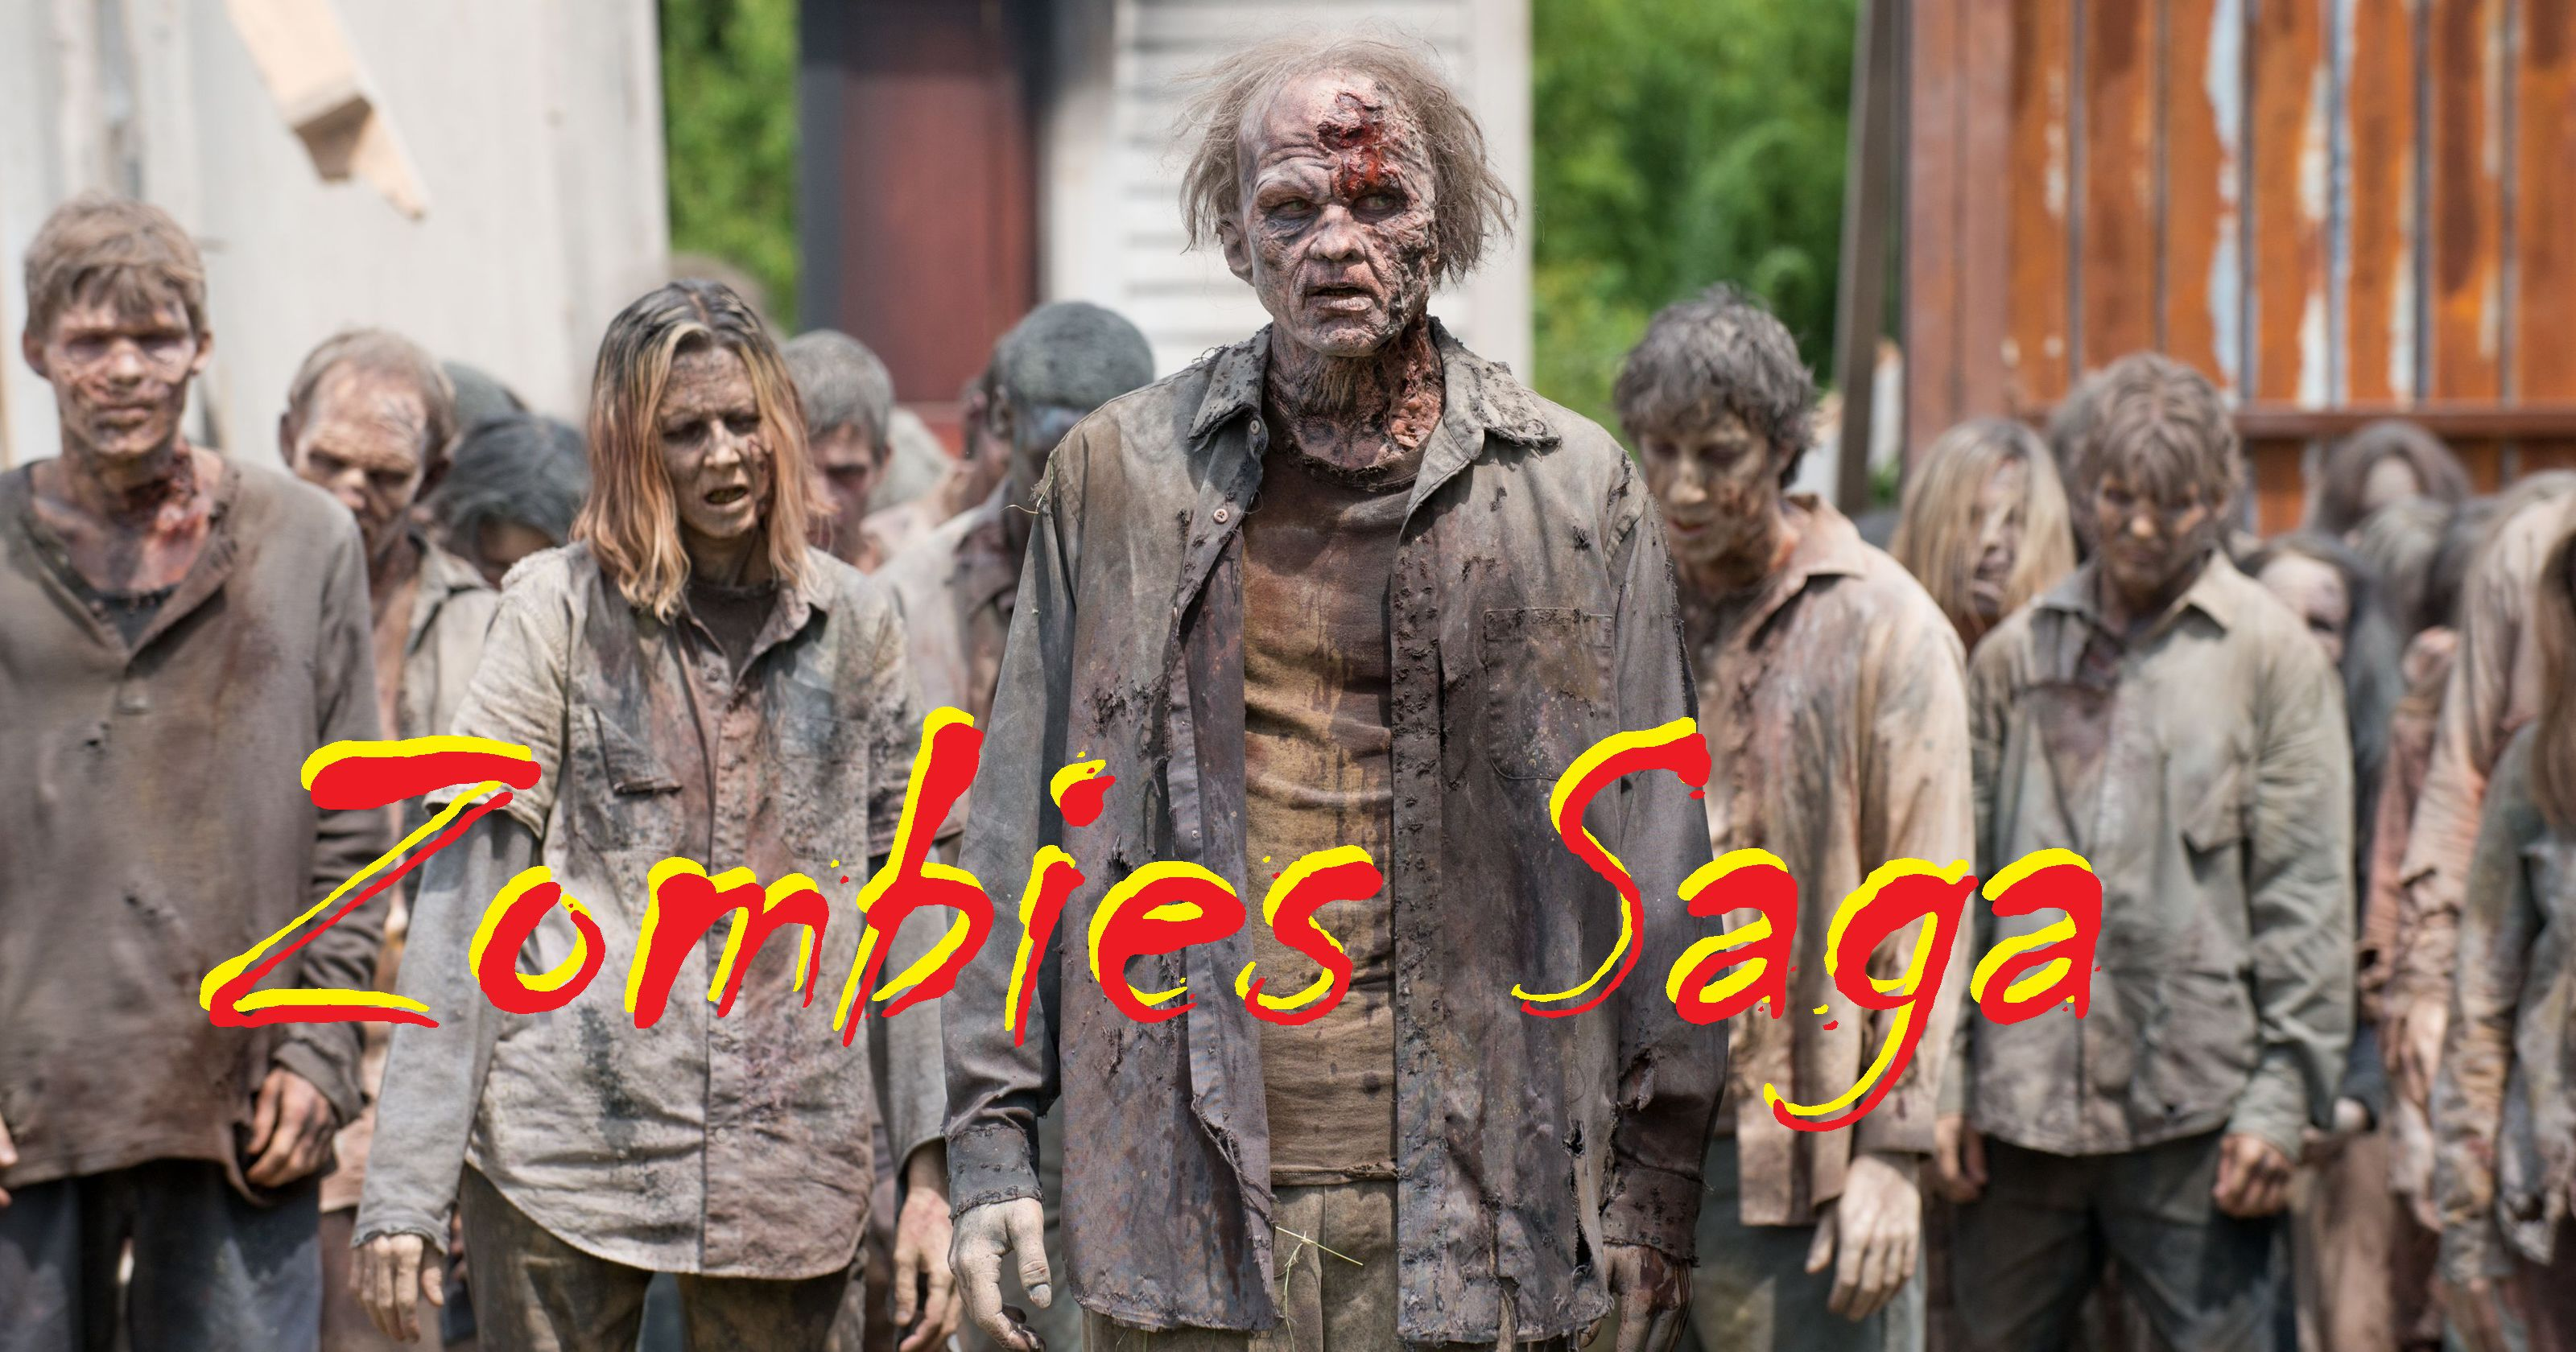 Zombies Saga... all walking dead's horror